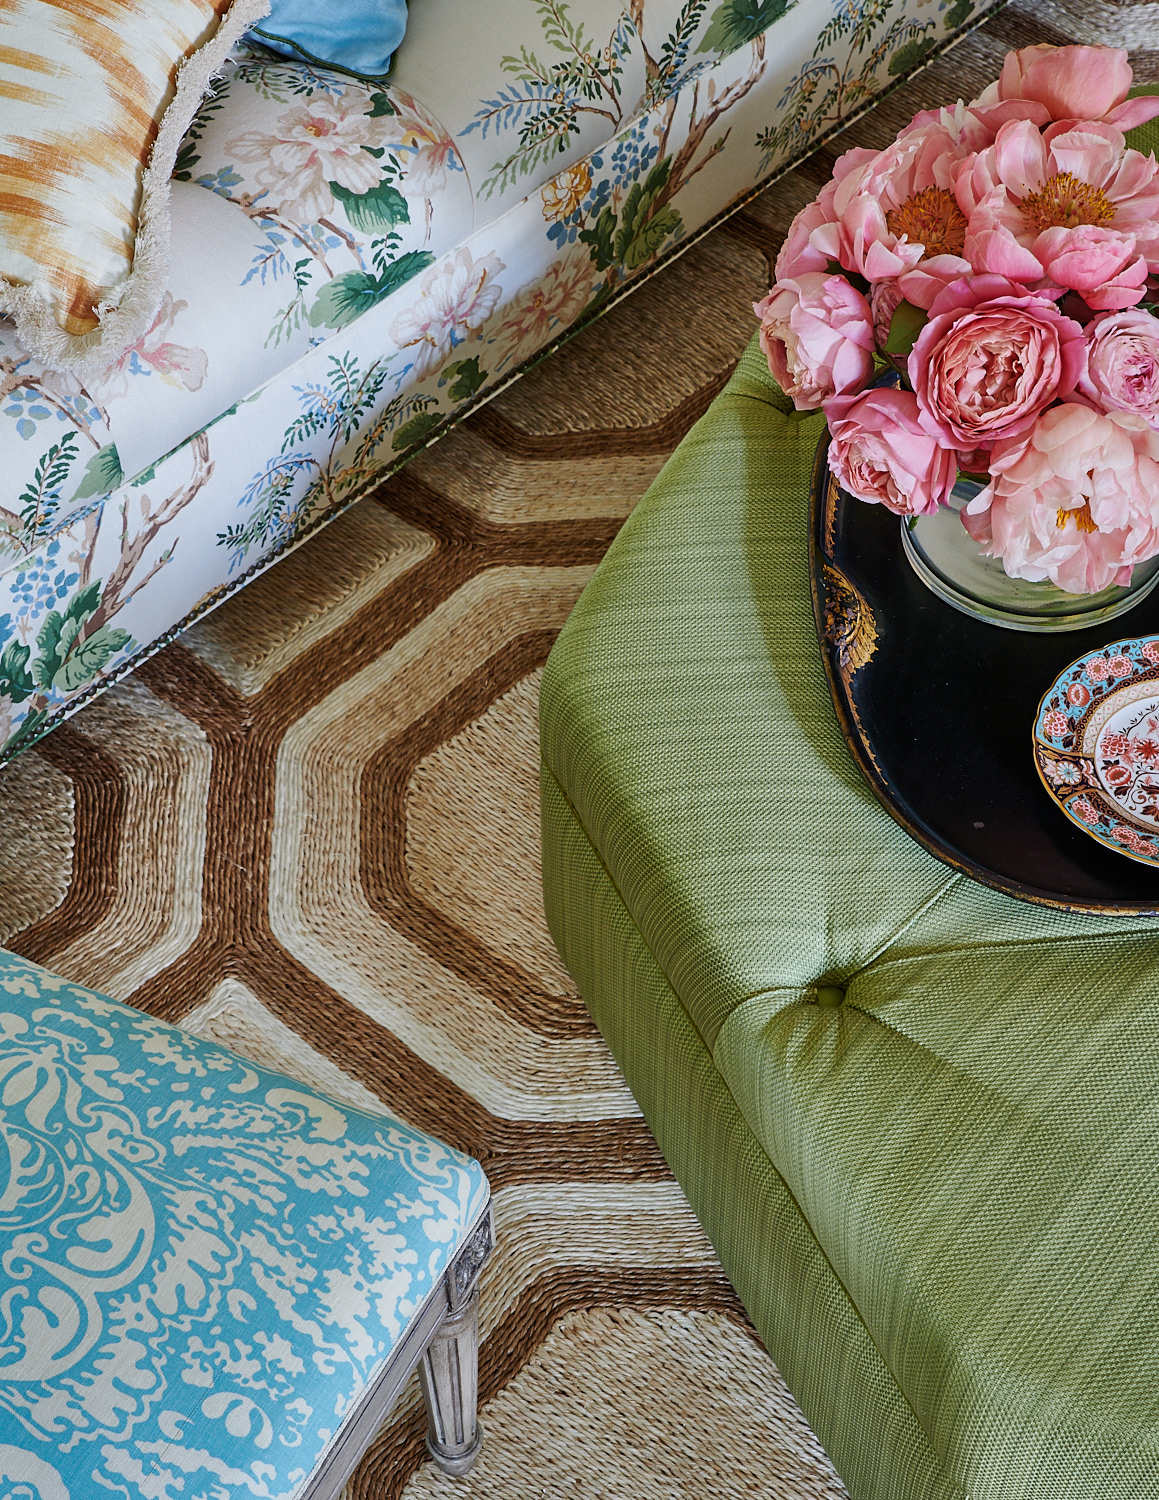 Vertical-striped tufted ottoman